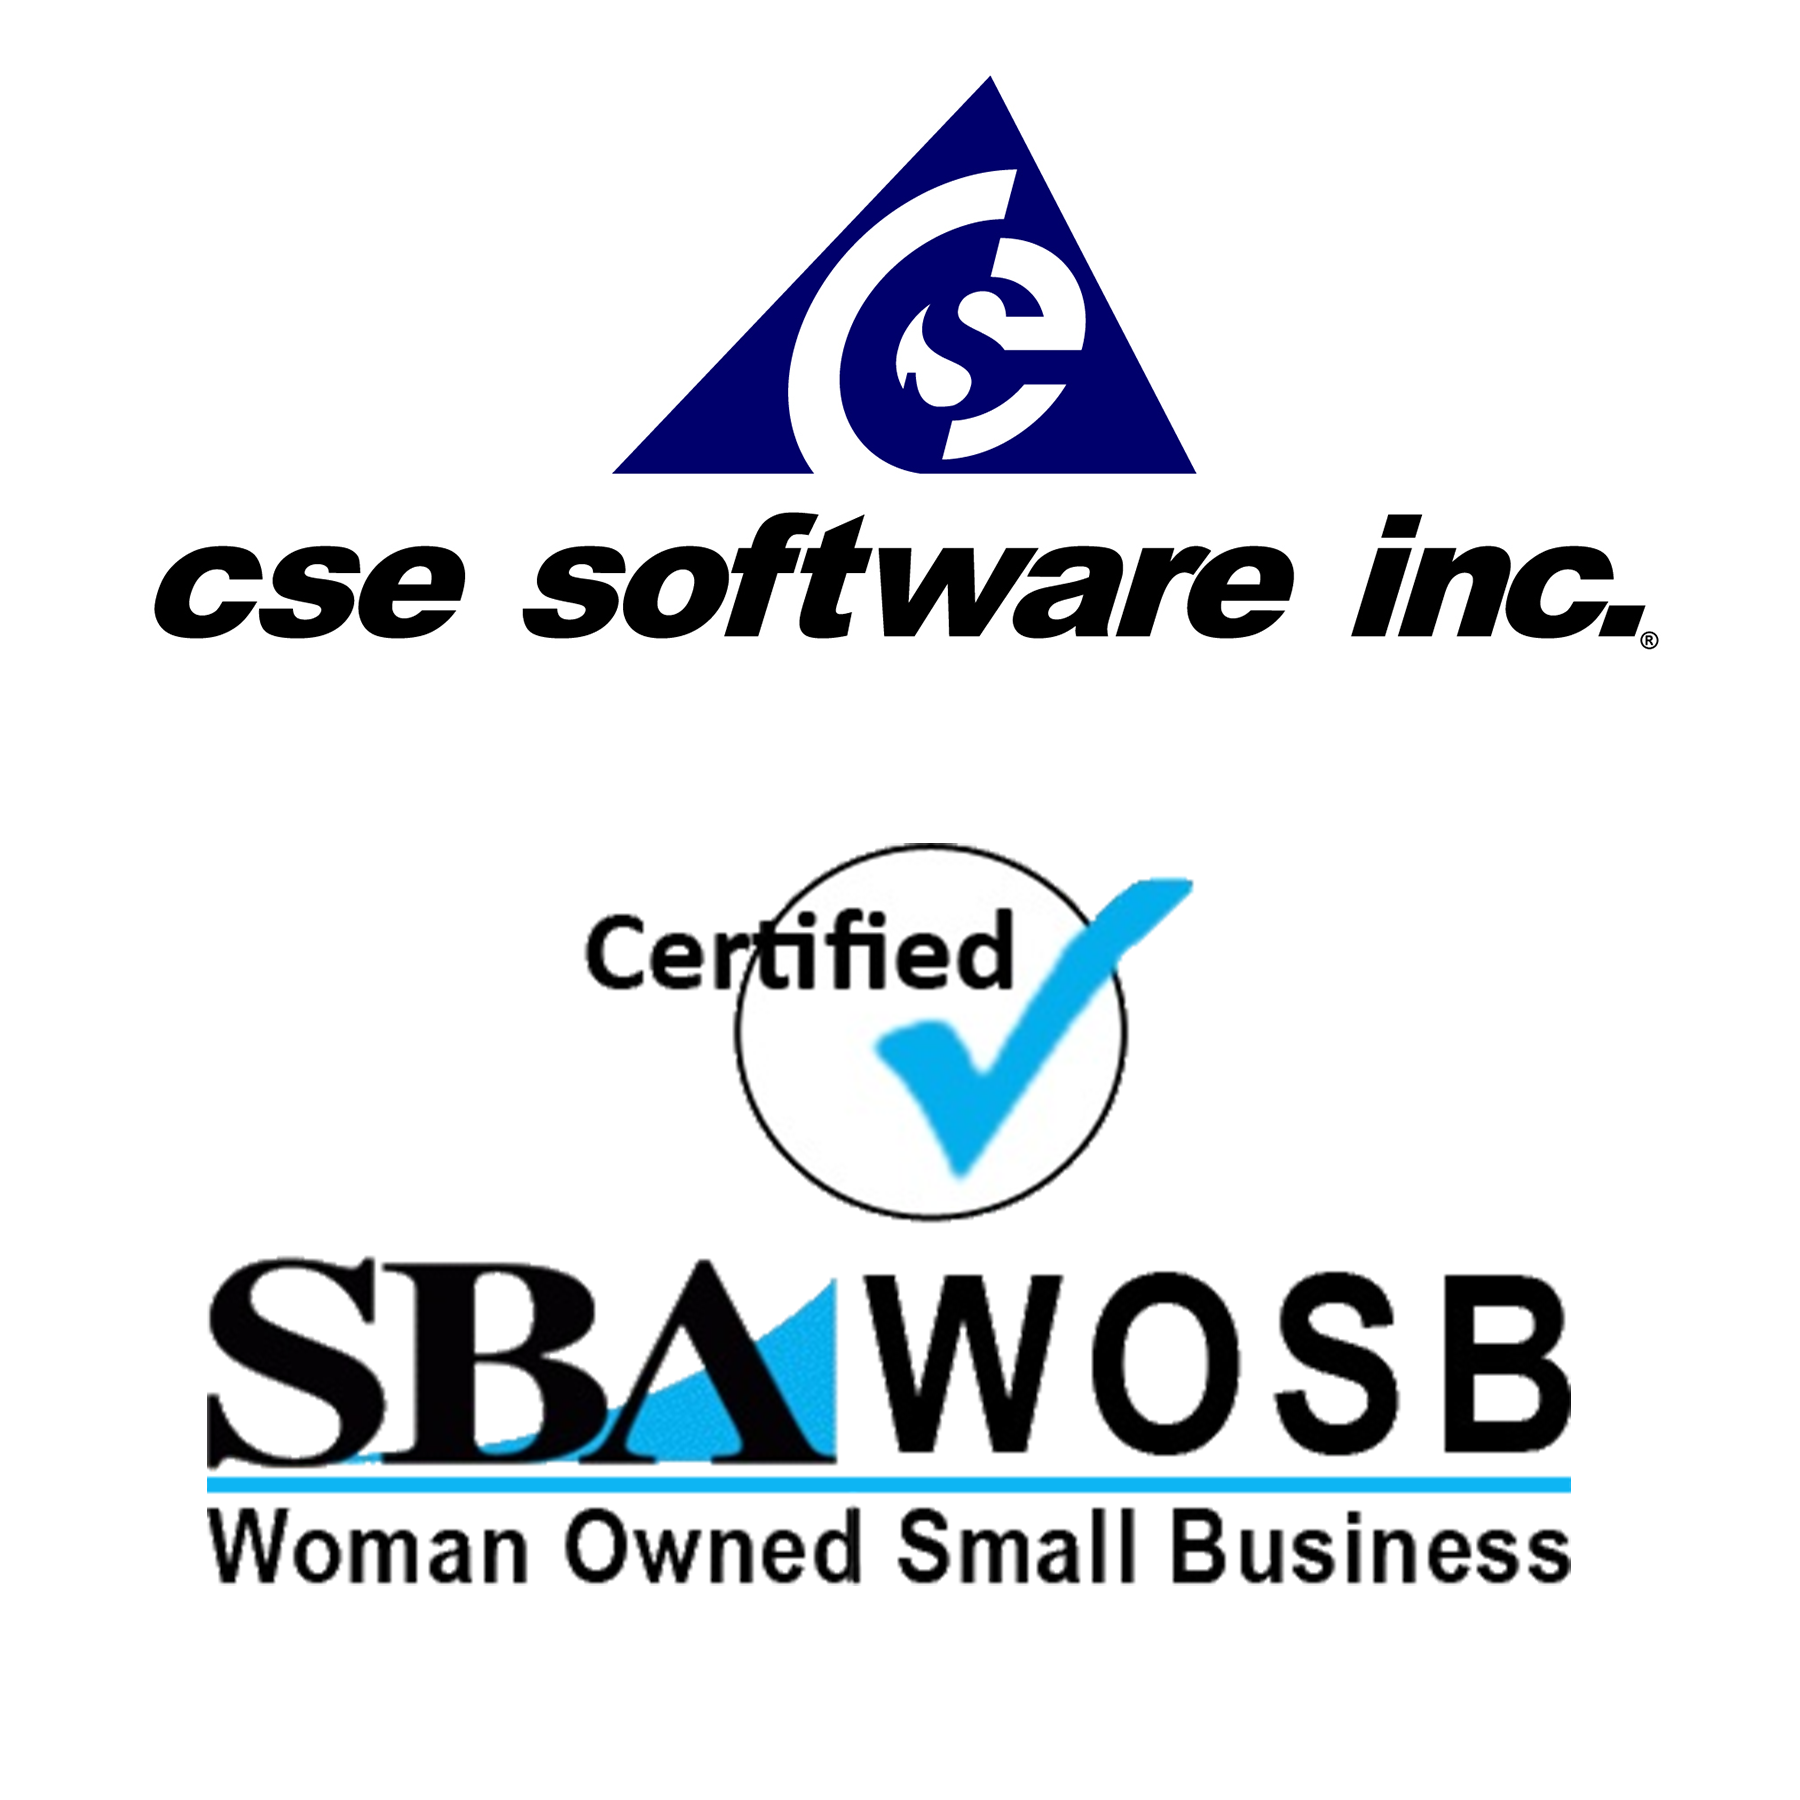 CSE SOFTWARE® INC. NOW CERTIFIED WOMEN OWNED SMALL BUSINESS